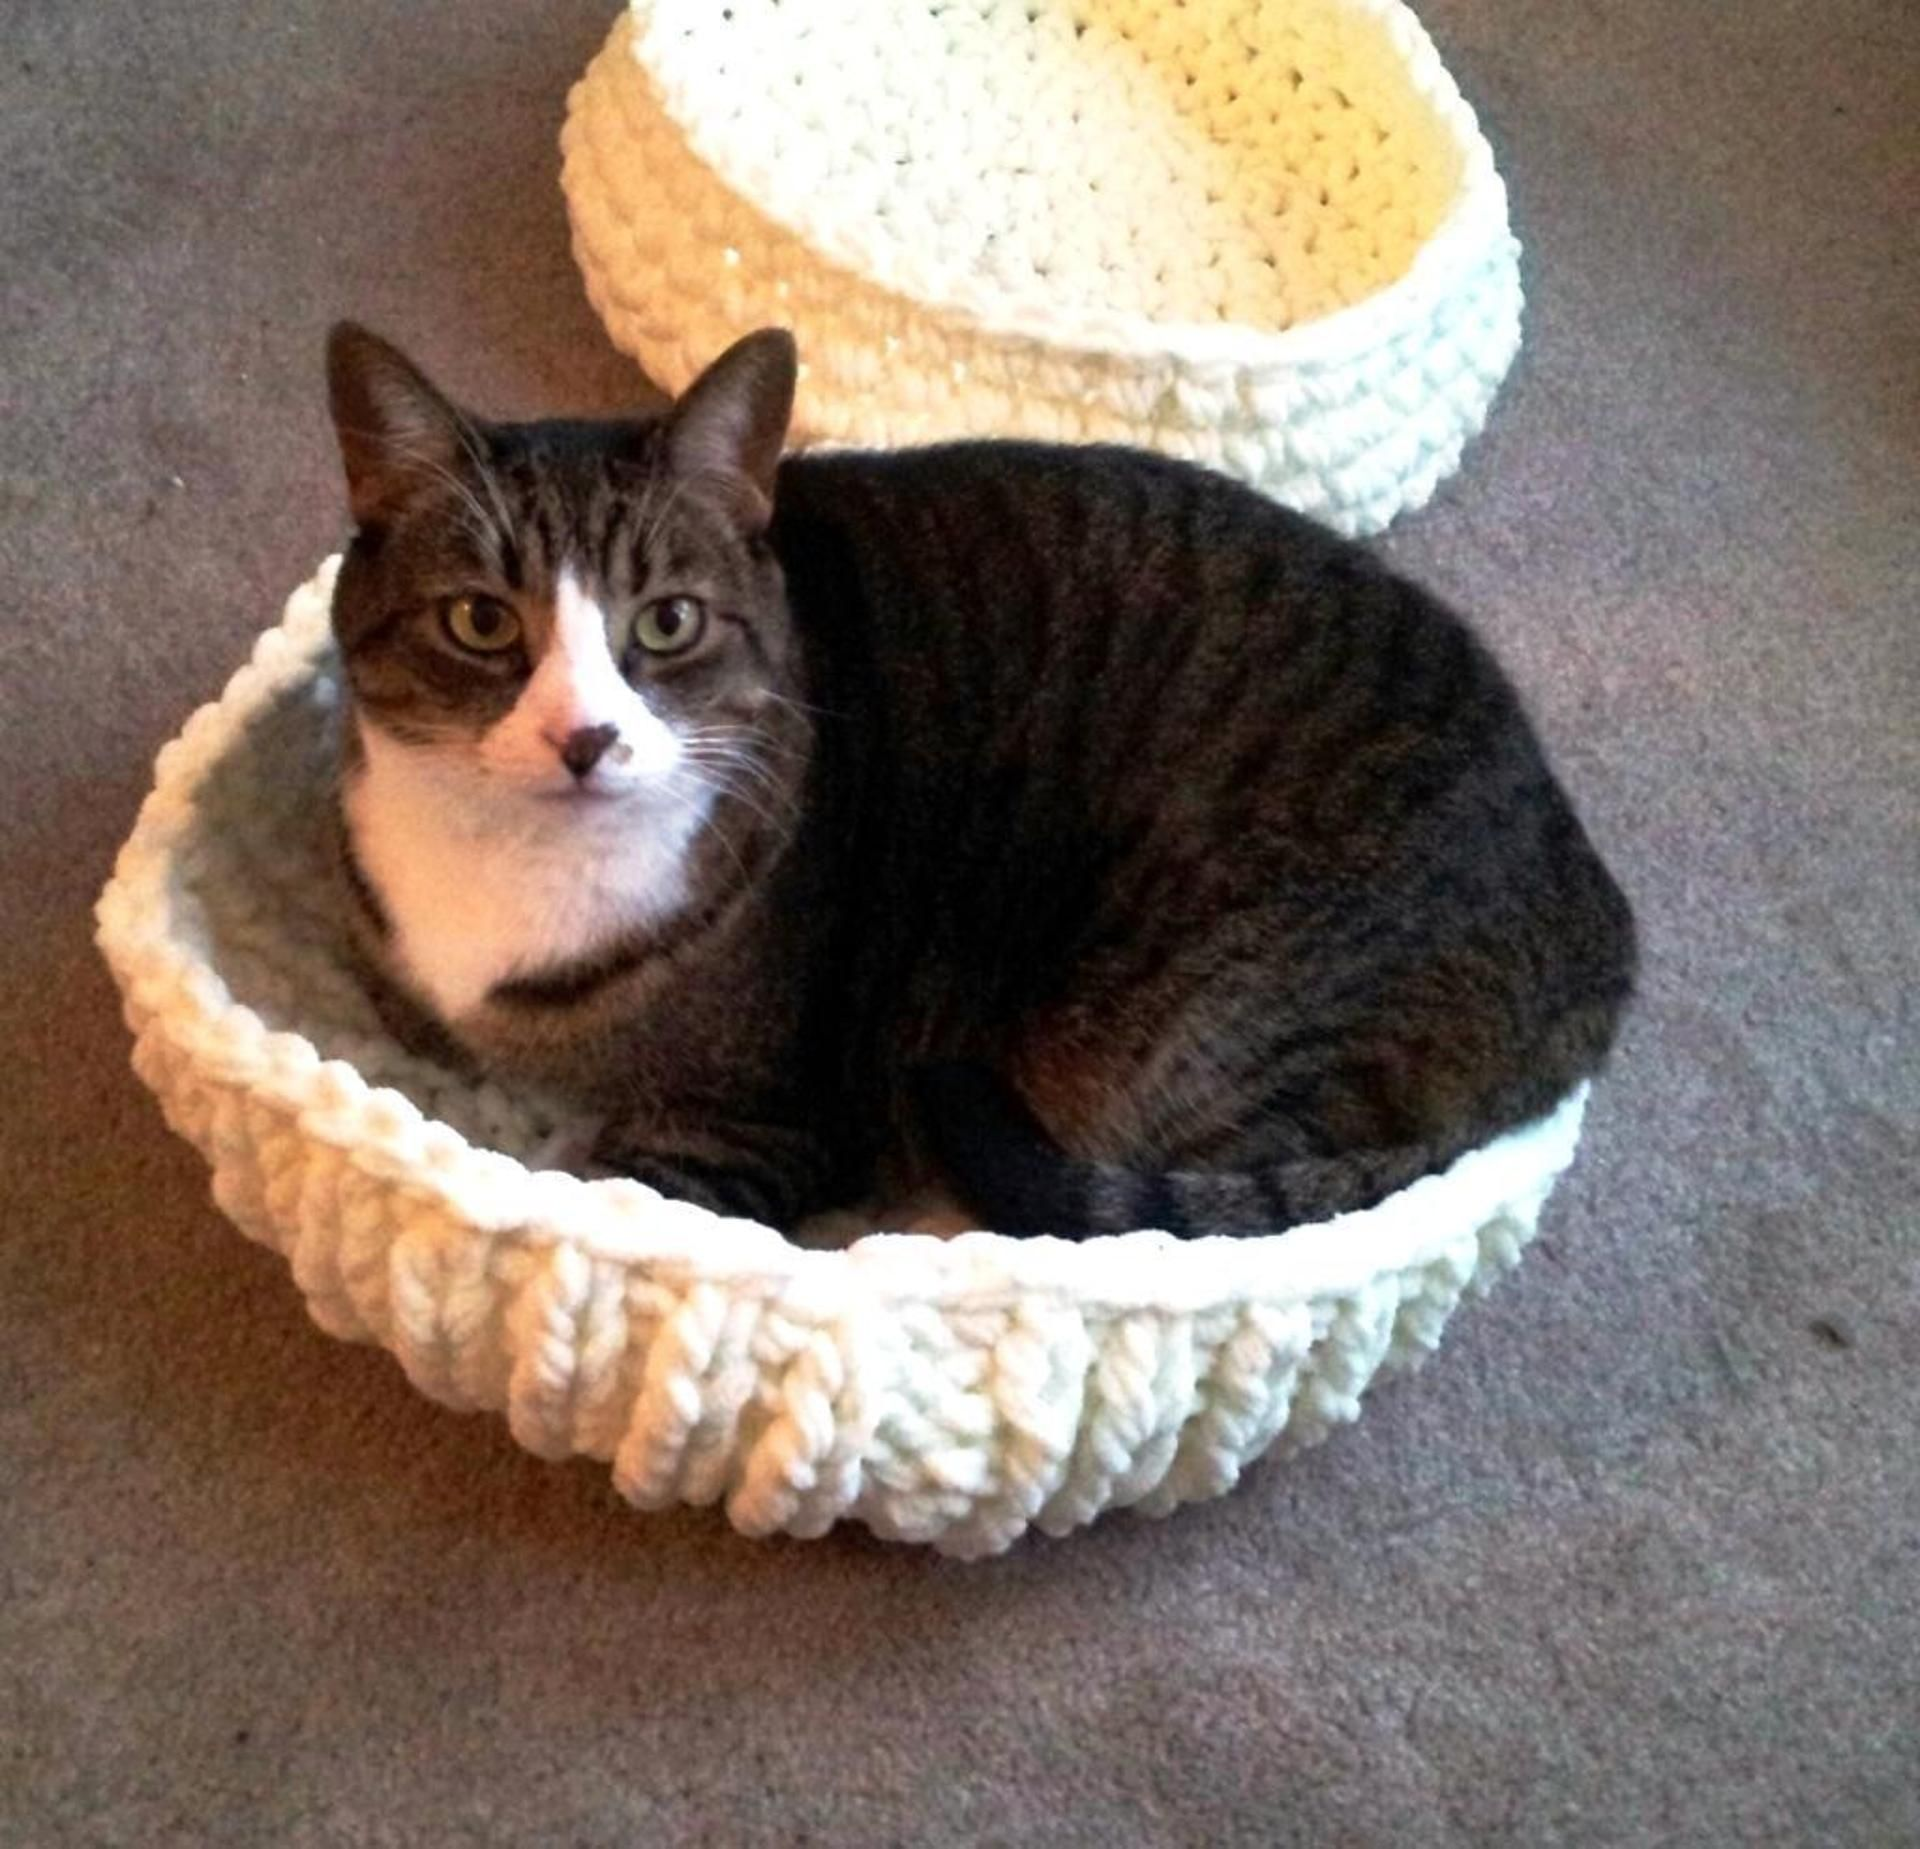 Knitted Kitty Bowl Bed | Pinterest | Dog beds, Kitty and Dog